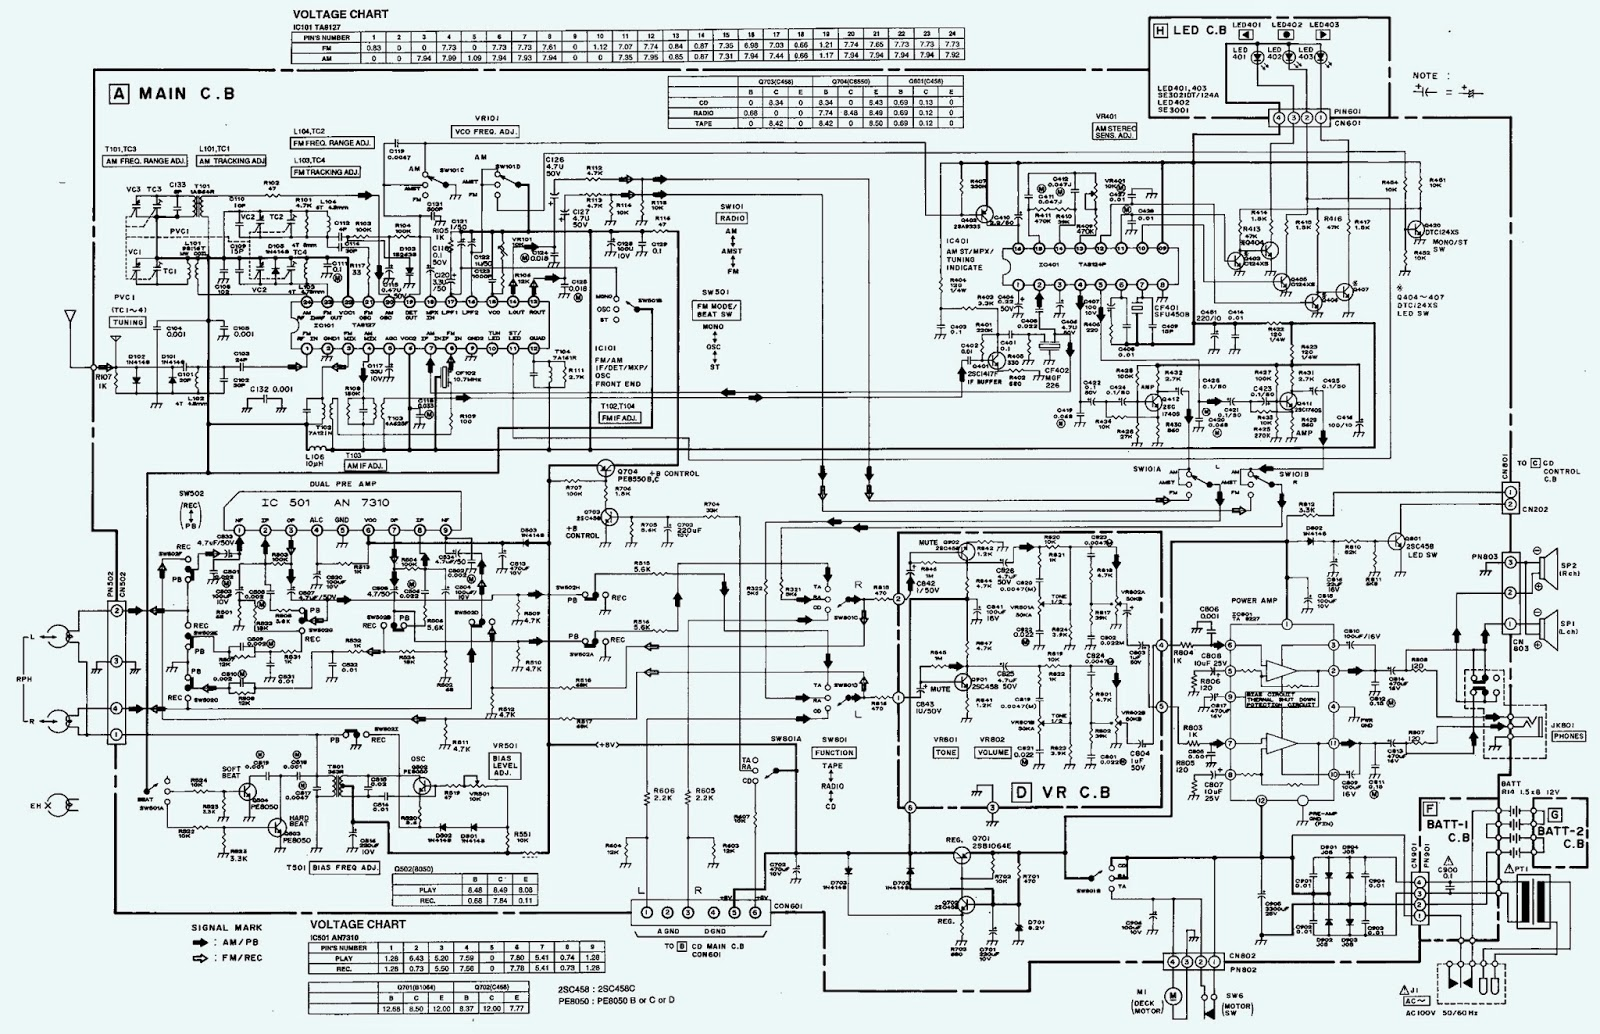 aiwa wiring diagram schematic wiring diagrams car subwoofer wiring diagram aiwa wiring diagram [ 1600 x 1034 Pixel ]